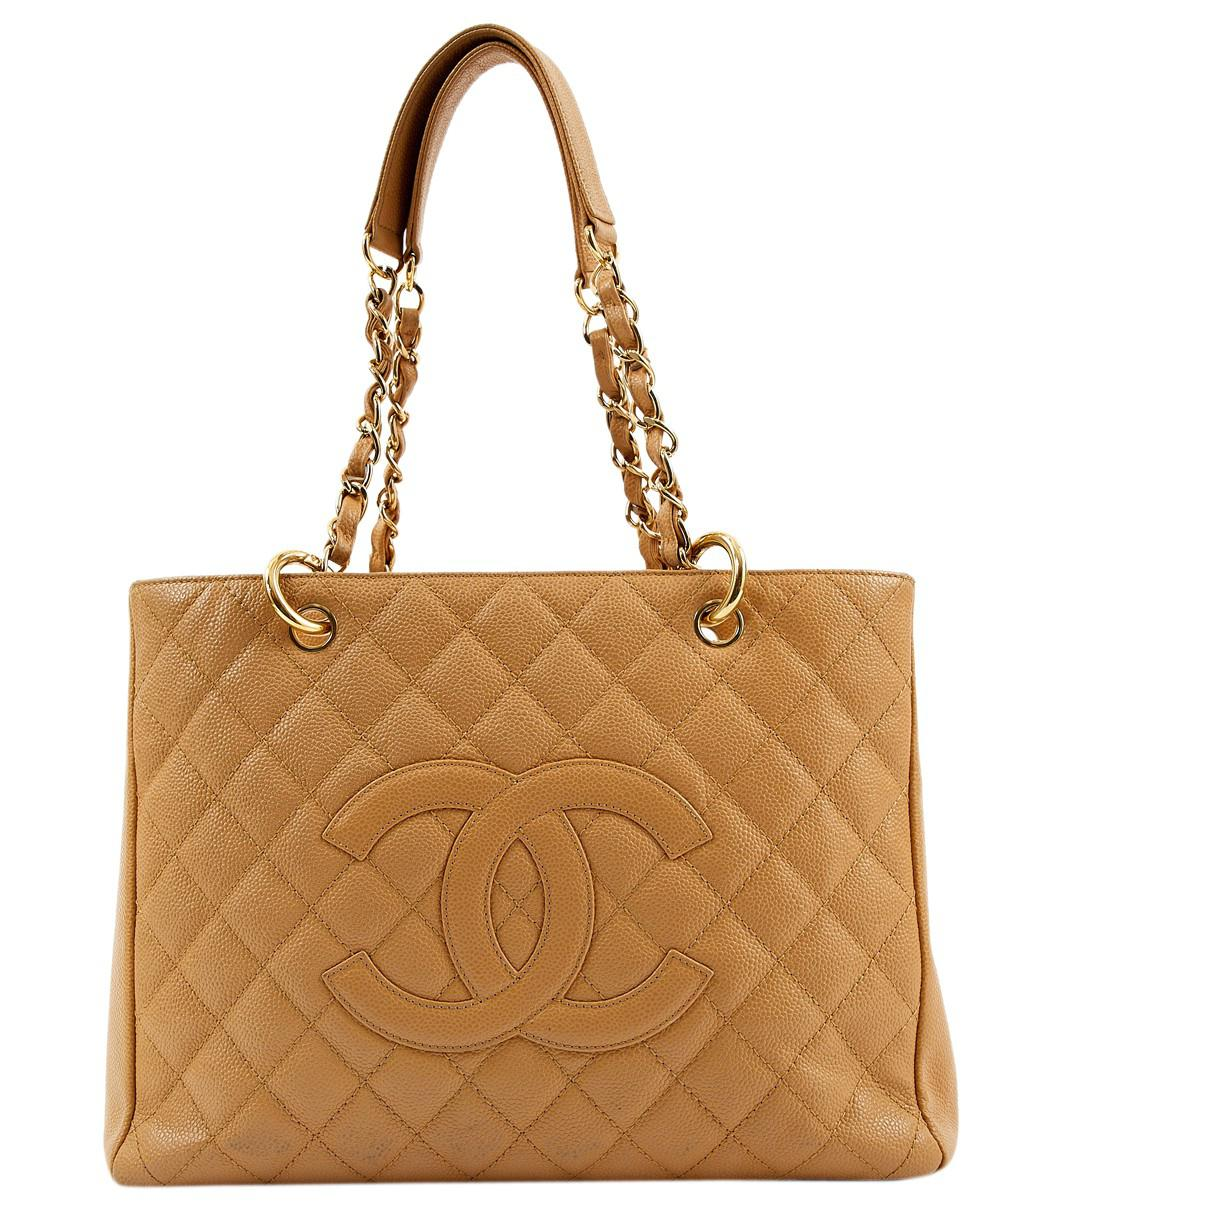 Chanel Pre-owned - Grand shopping leather tote YIuAxXue